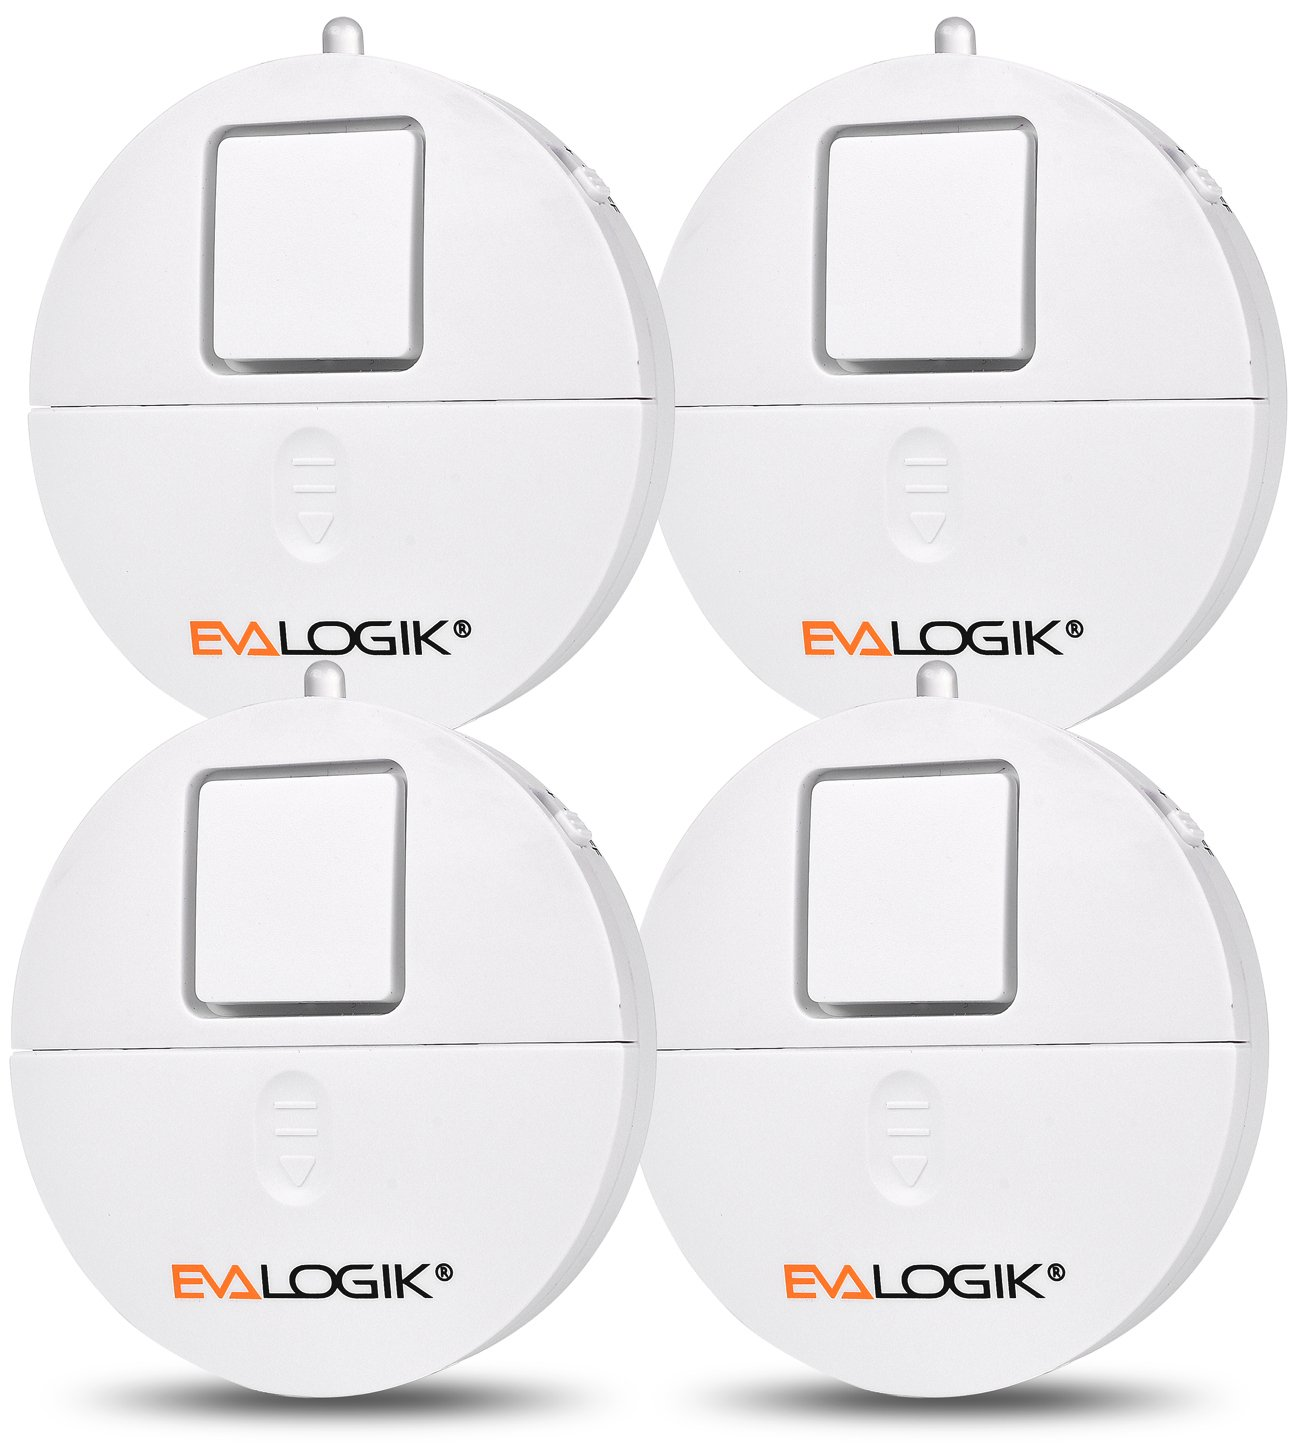 Window Alarm 4 Packs - Loud 120dB Alarm and Vibration Sensors Compatible with Virtually Any Window - Glass Break Security Alarm Sensor- Low Battery LED Indicator